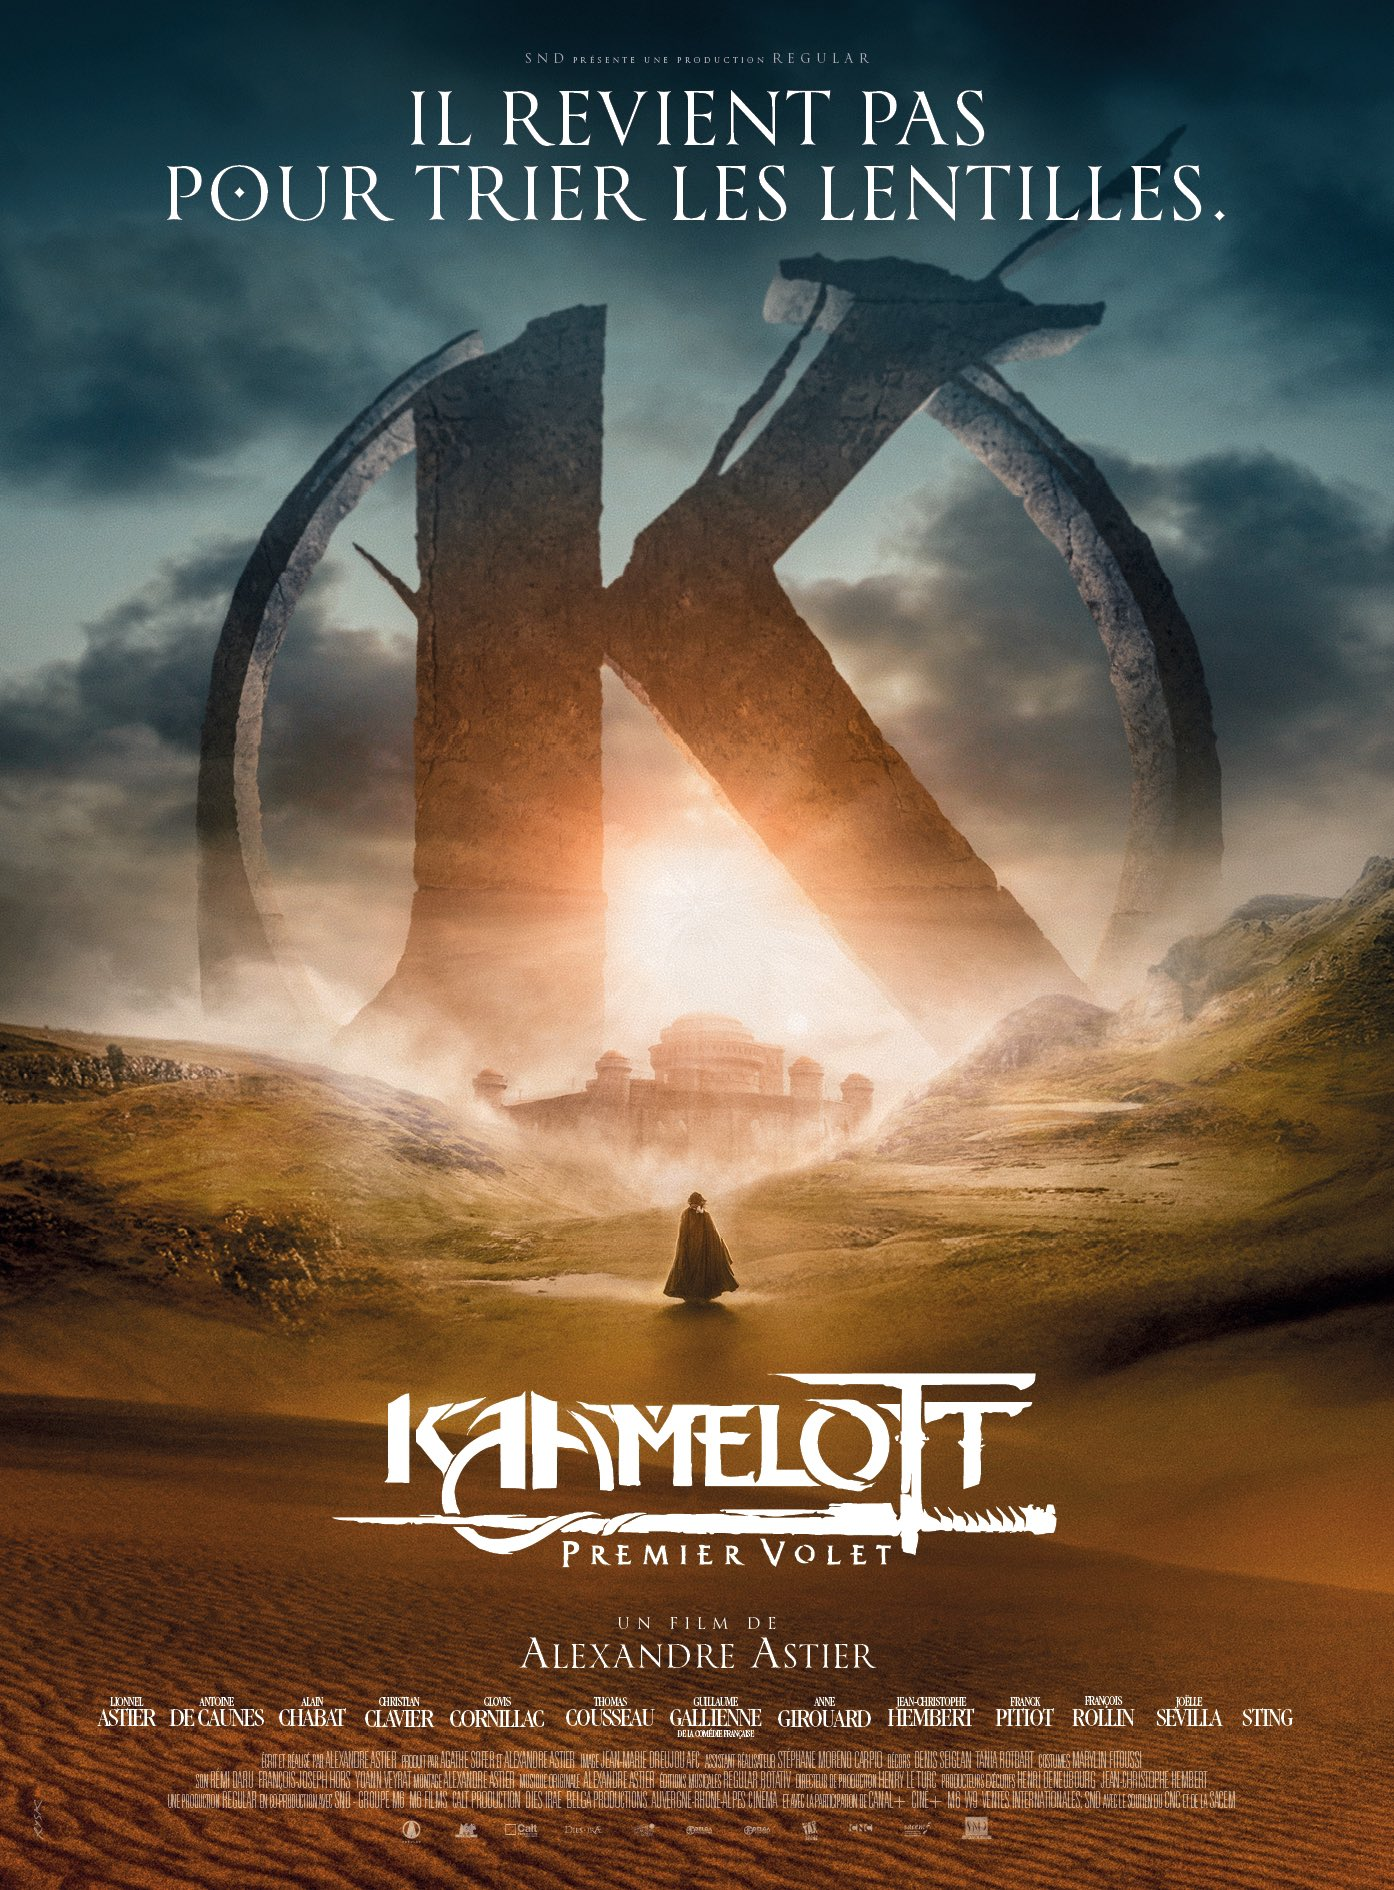 Download Kaamelott - Premier volet (2021) Tamil Dubbed (Voice Over) & English [Dual Audio] CAMRip 720p [1XBET] Full Movie Online On 1xcinema.com